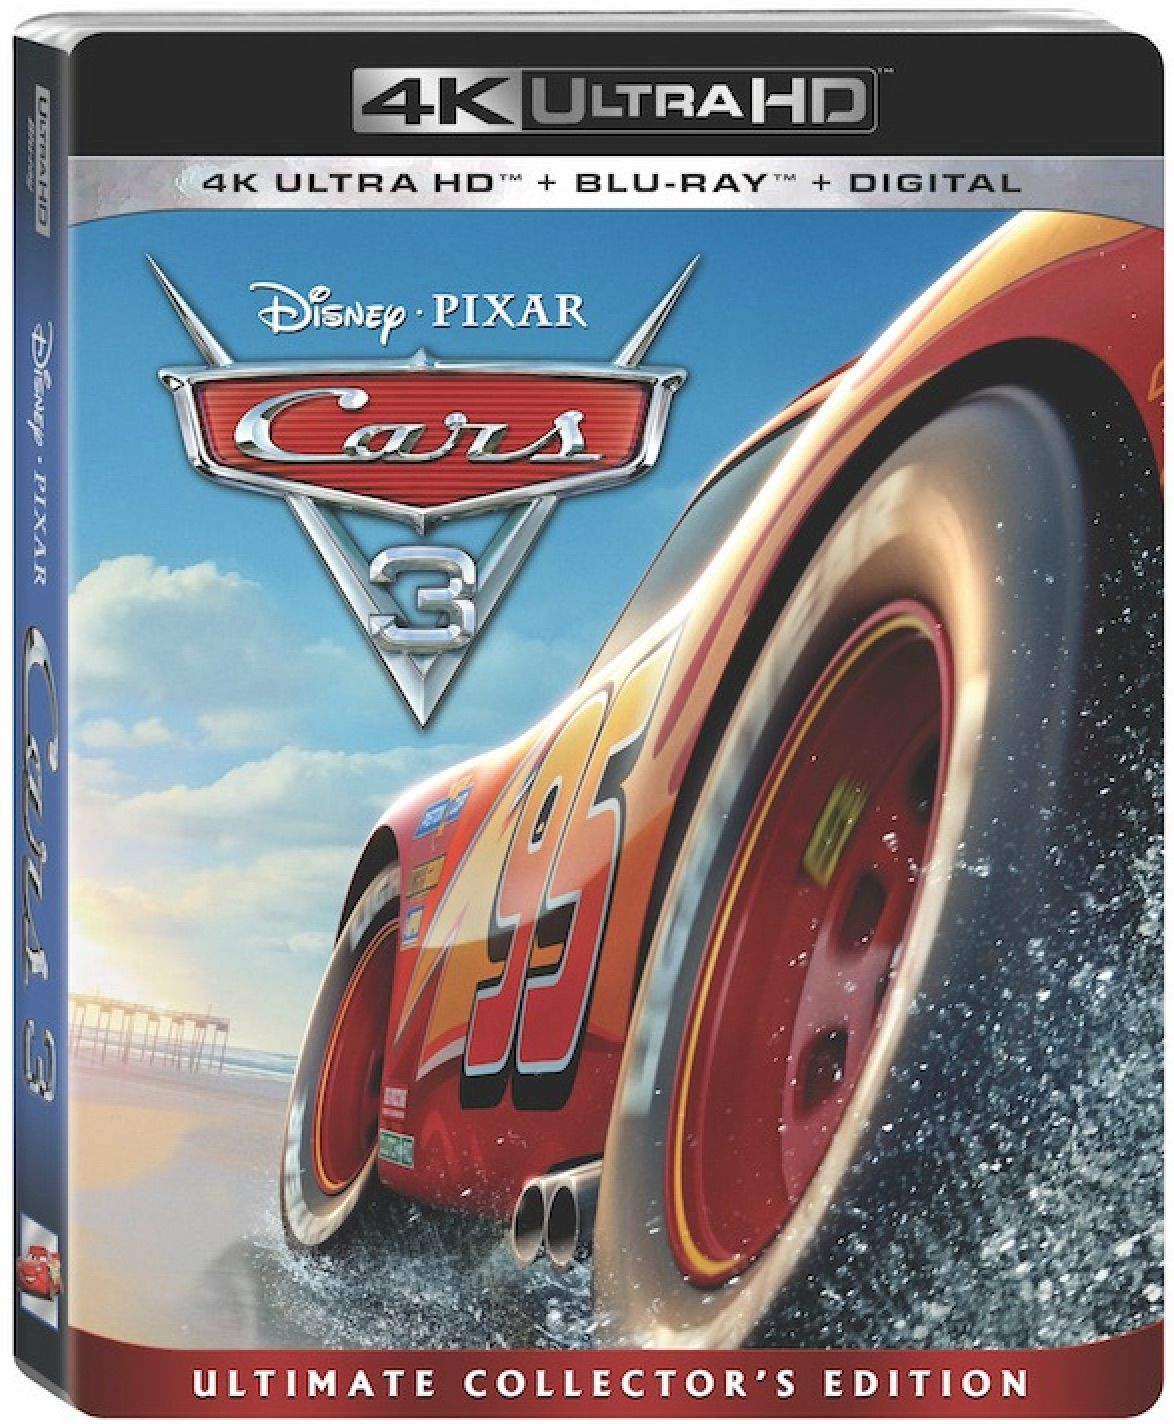 Add Cars 3 Blu Ray Dvd Collection To Your Holiday Shopping List